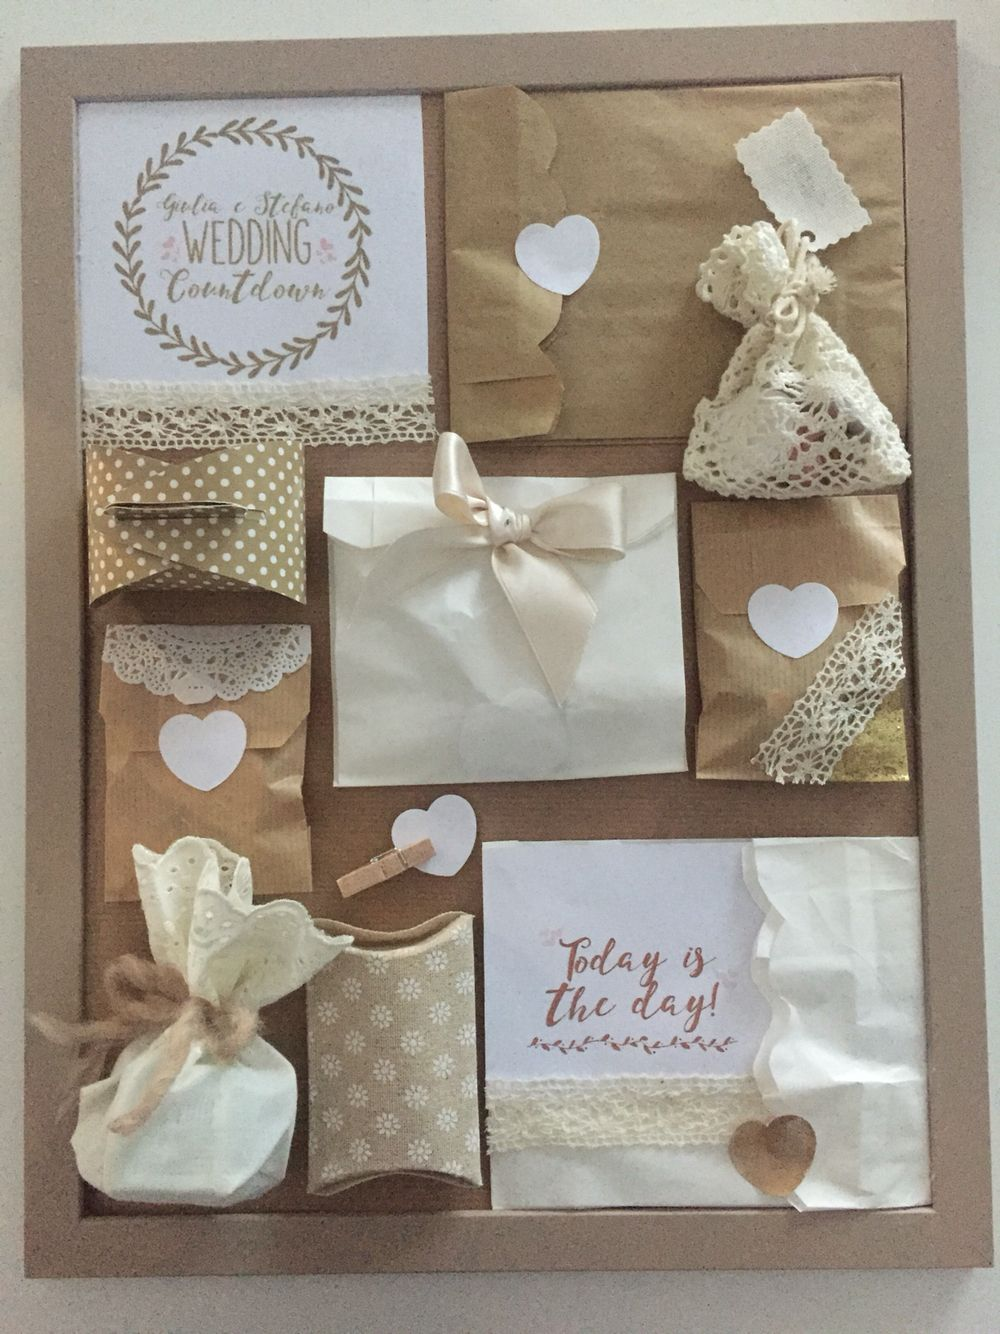 Best Wedding Gifts Ever.Giulia Stefano Wedding Countdown Wedding Advent Calendar Bride